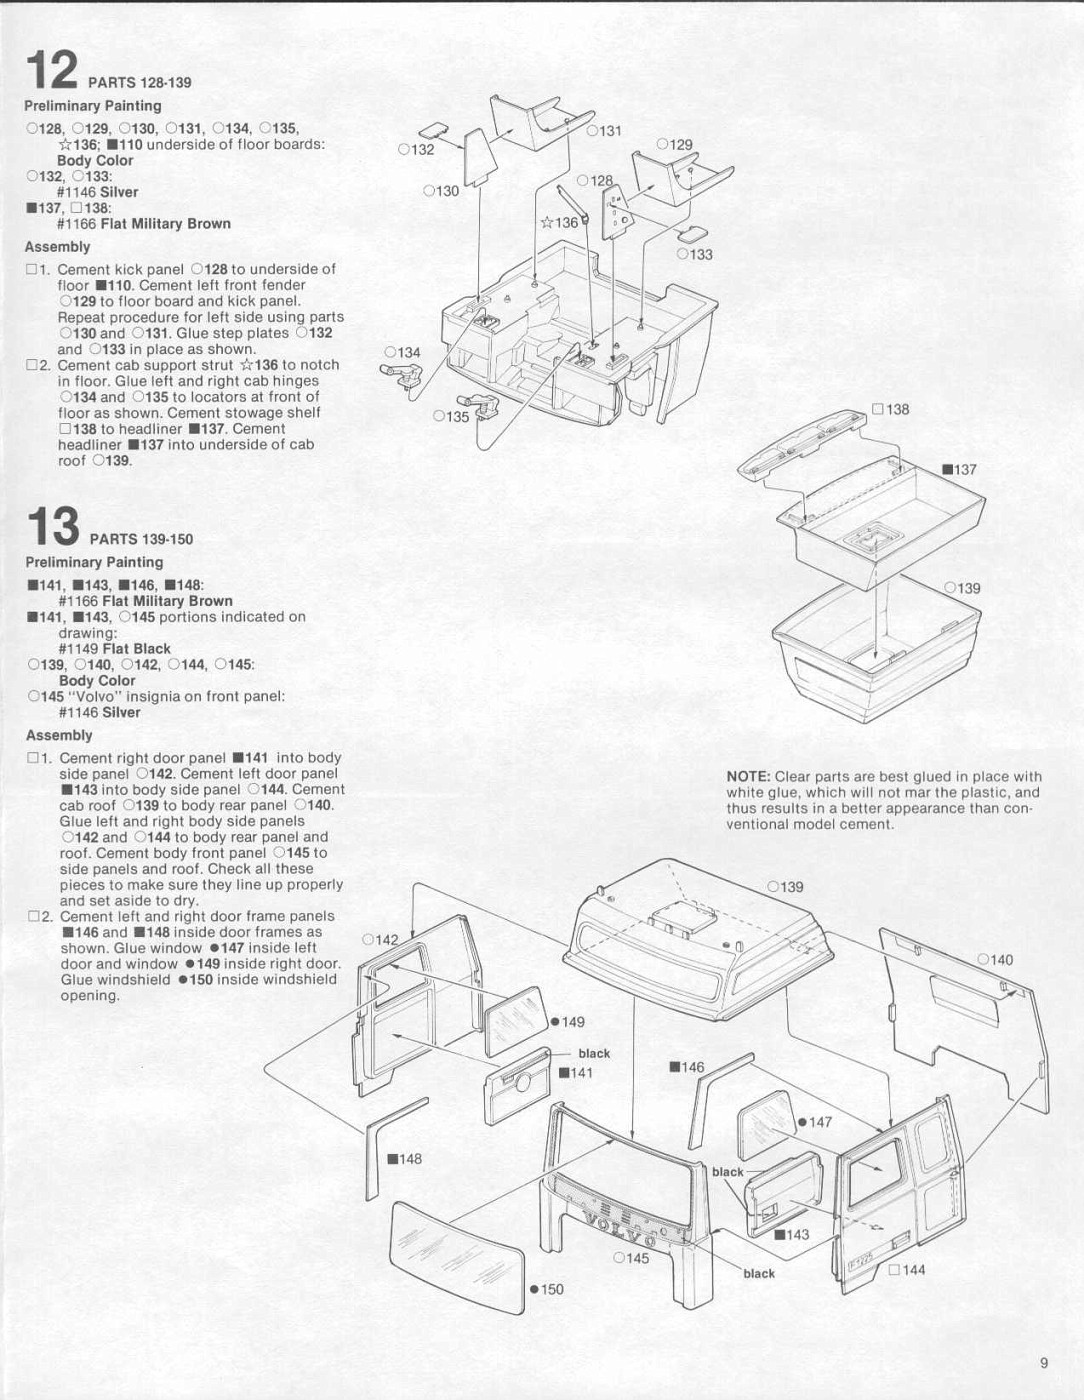 Qo200tr Wiring Diagram 22 Images Diagrams Ac For Volvo Volvof12globetrotter09 Vi Square D Air Conditioner Disconnect Grihon Com Coolers Devices